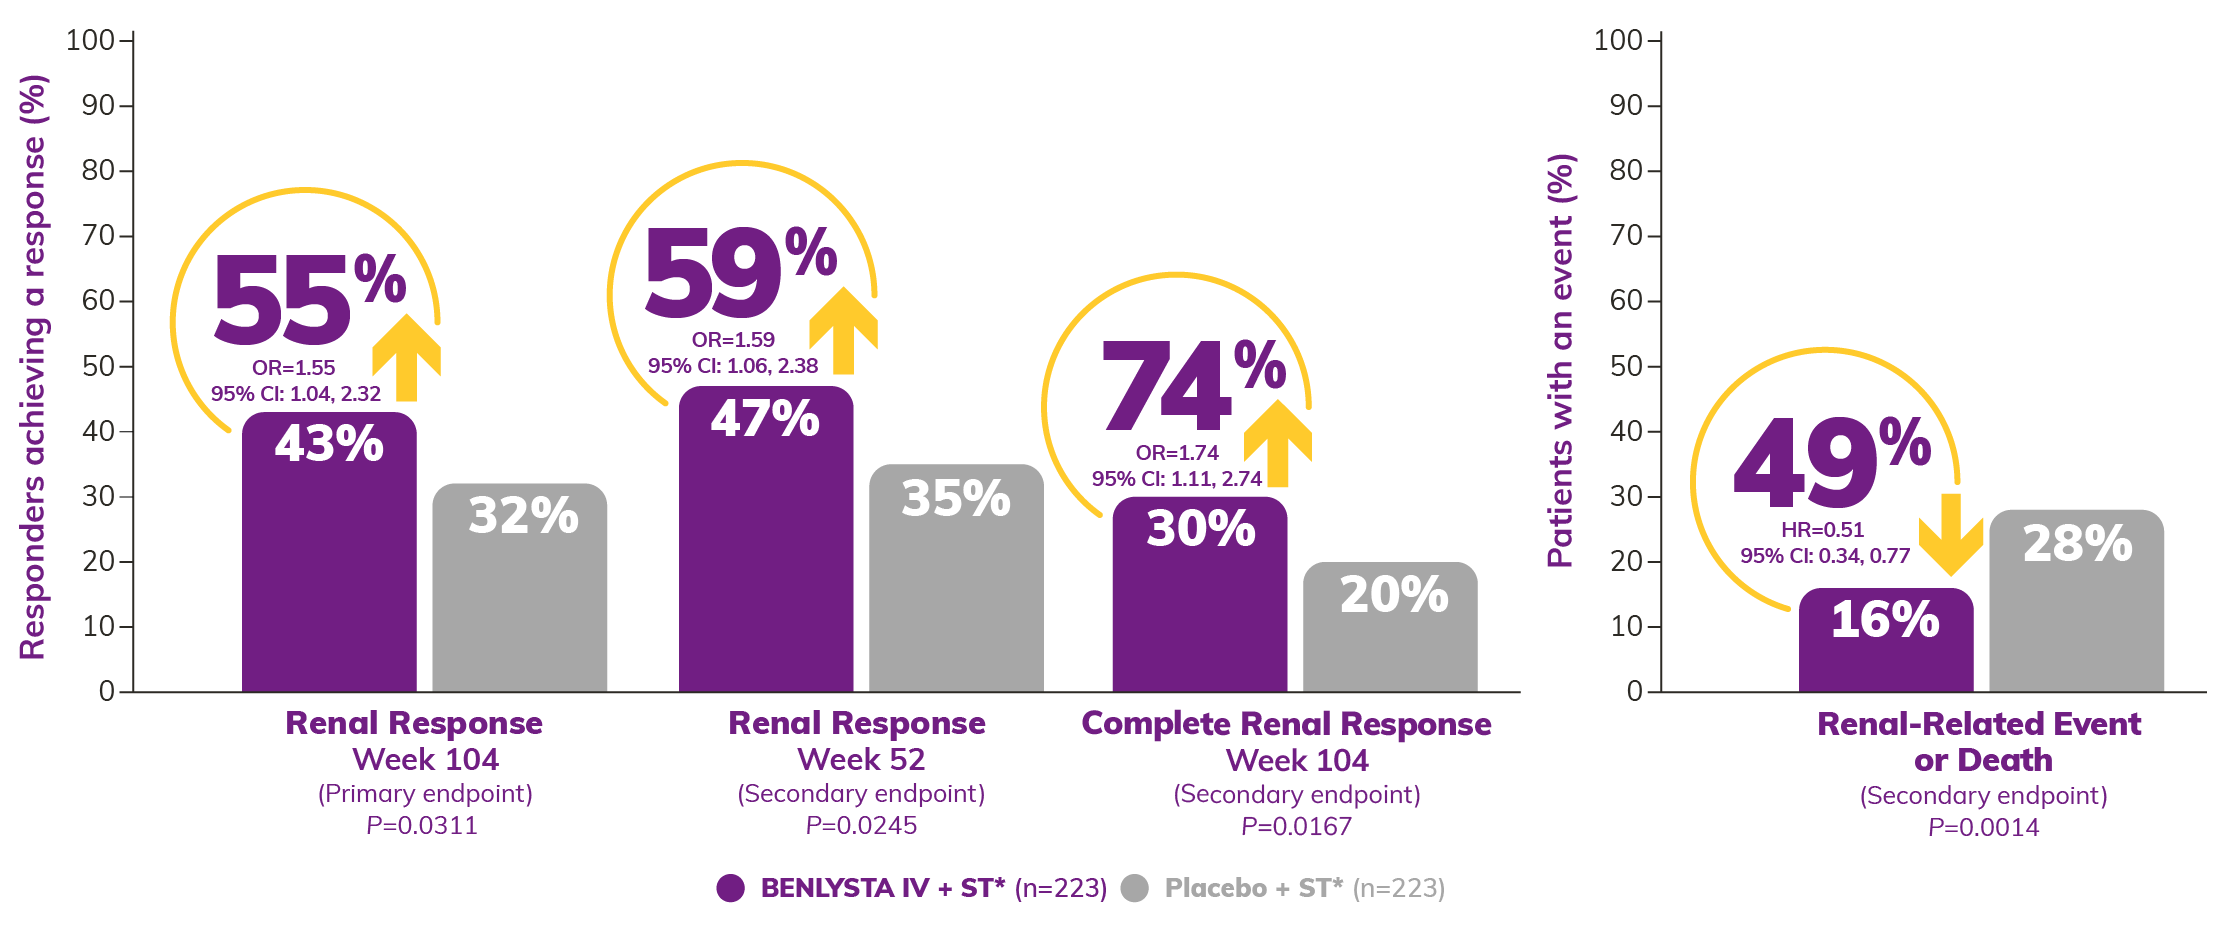 Graph: BLISS-LN Renal Response Rate Shows 43% BENLYSTA + ST and 32% Placebo + ST at Week 104; 47% BENLYSTA + ST and 35% Placebo + ST at Week 52; Complete Renal Response Shows 30% BENLYSTA + ST and 20% Placebo + ST at Week 104. Percent of Patients with a Renal Related Event or Death at Week 104 Shows 16% BENLYSTA + ST and 28% Placebo + ST